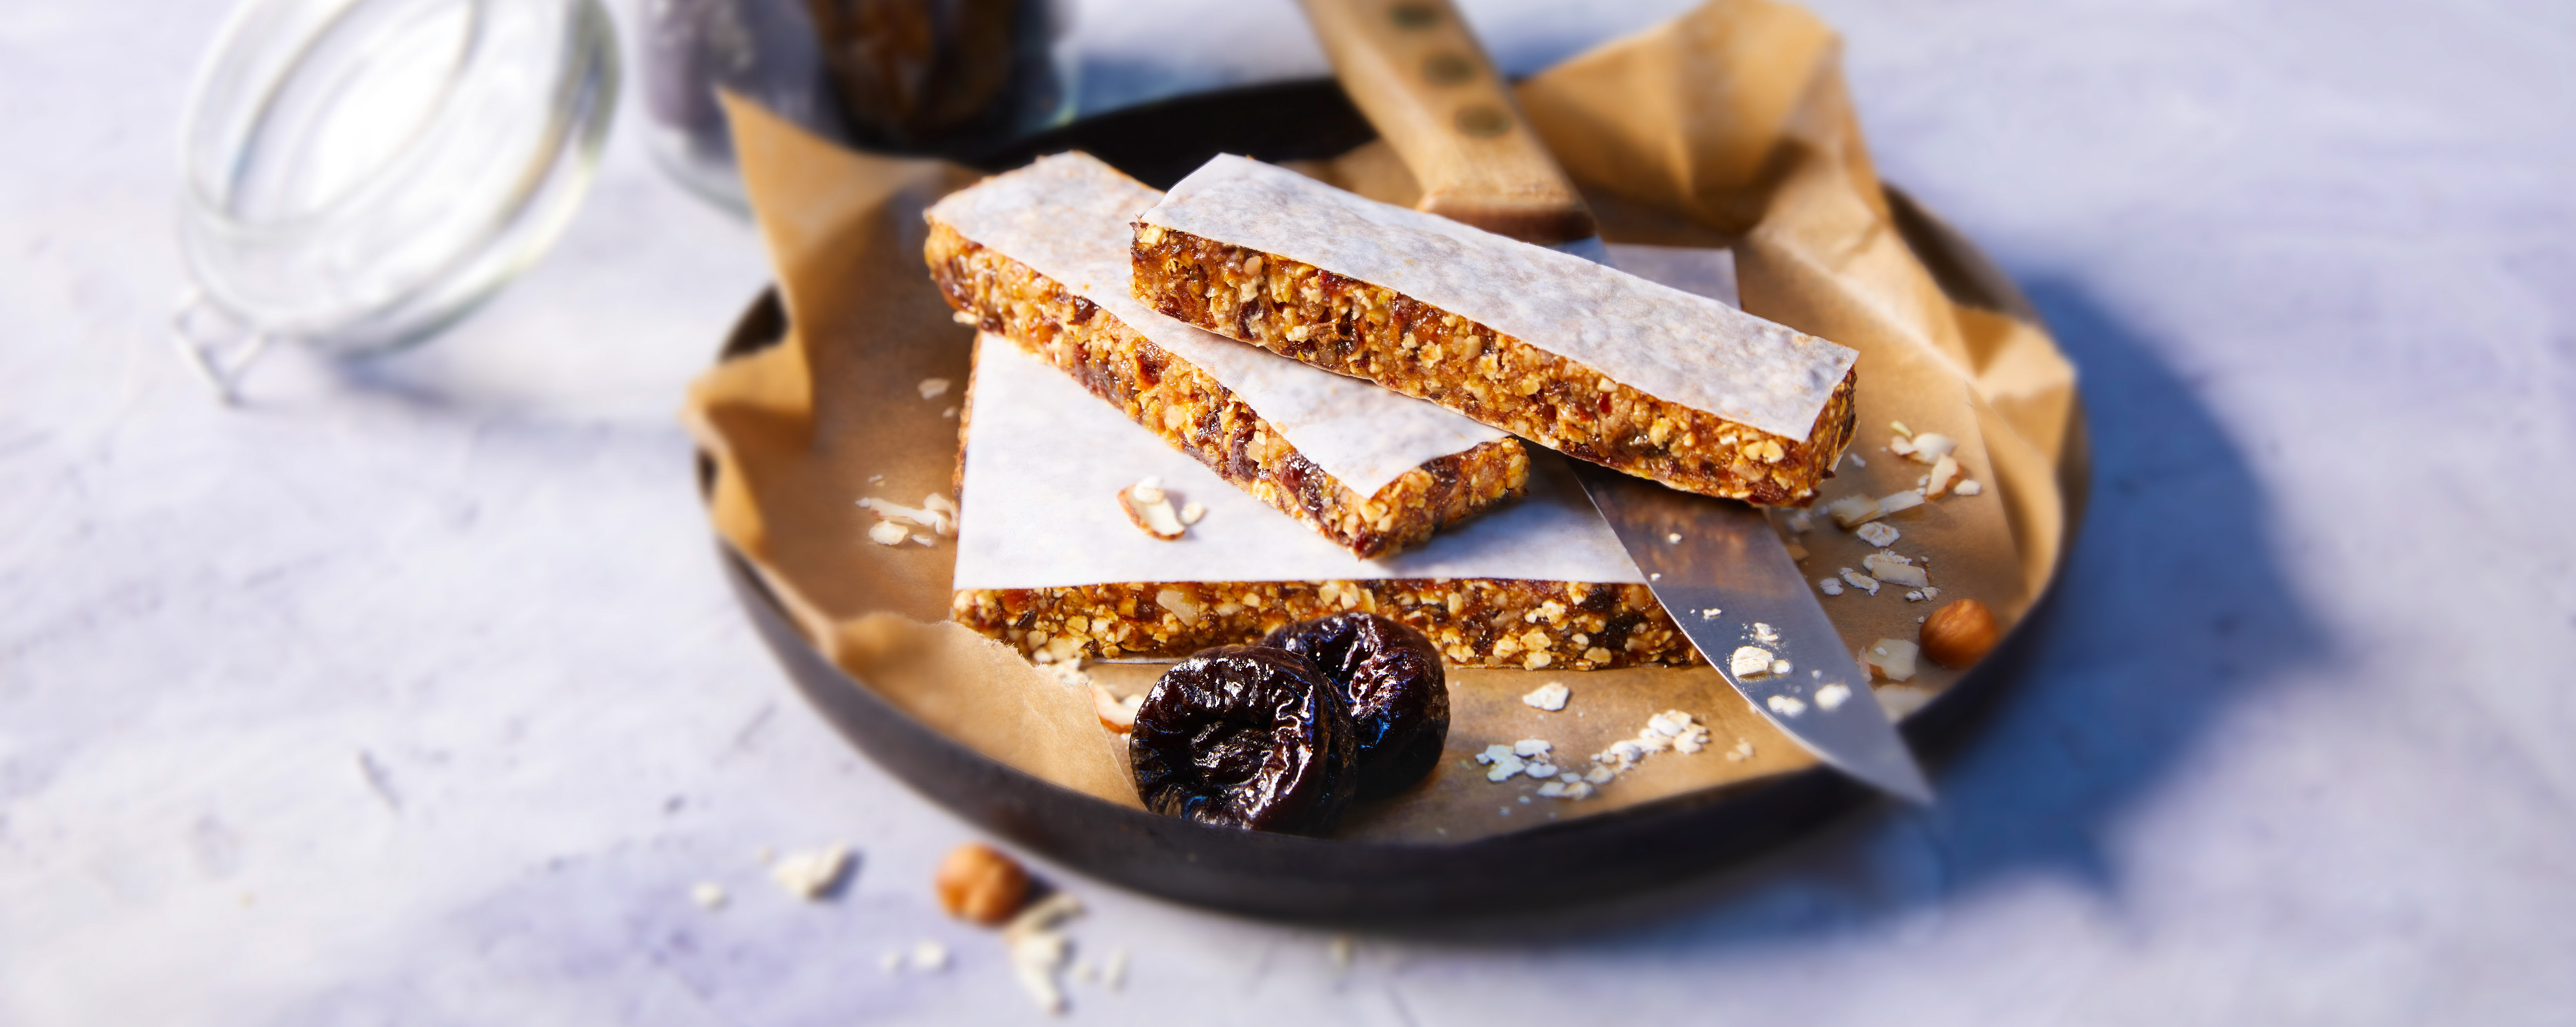 <p>Looking for homemade, healthy snack bars that taste delicious? Try these no-bake energy bars that make wholesome, tasty snacks for hiking, biking, after workouts or as afternoon treats. 165 kcal / 690 kJ; protein 3.5 g; fat 8 g; carbohydrates 20 g</p>